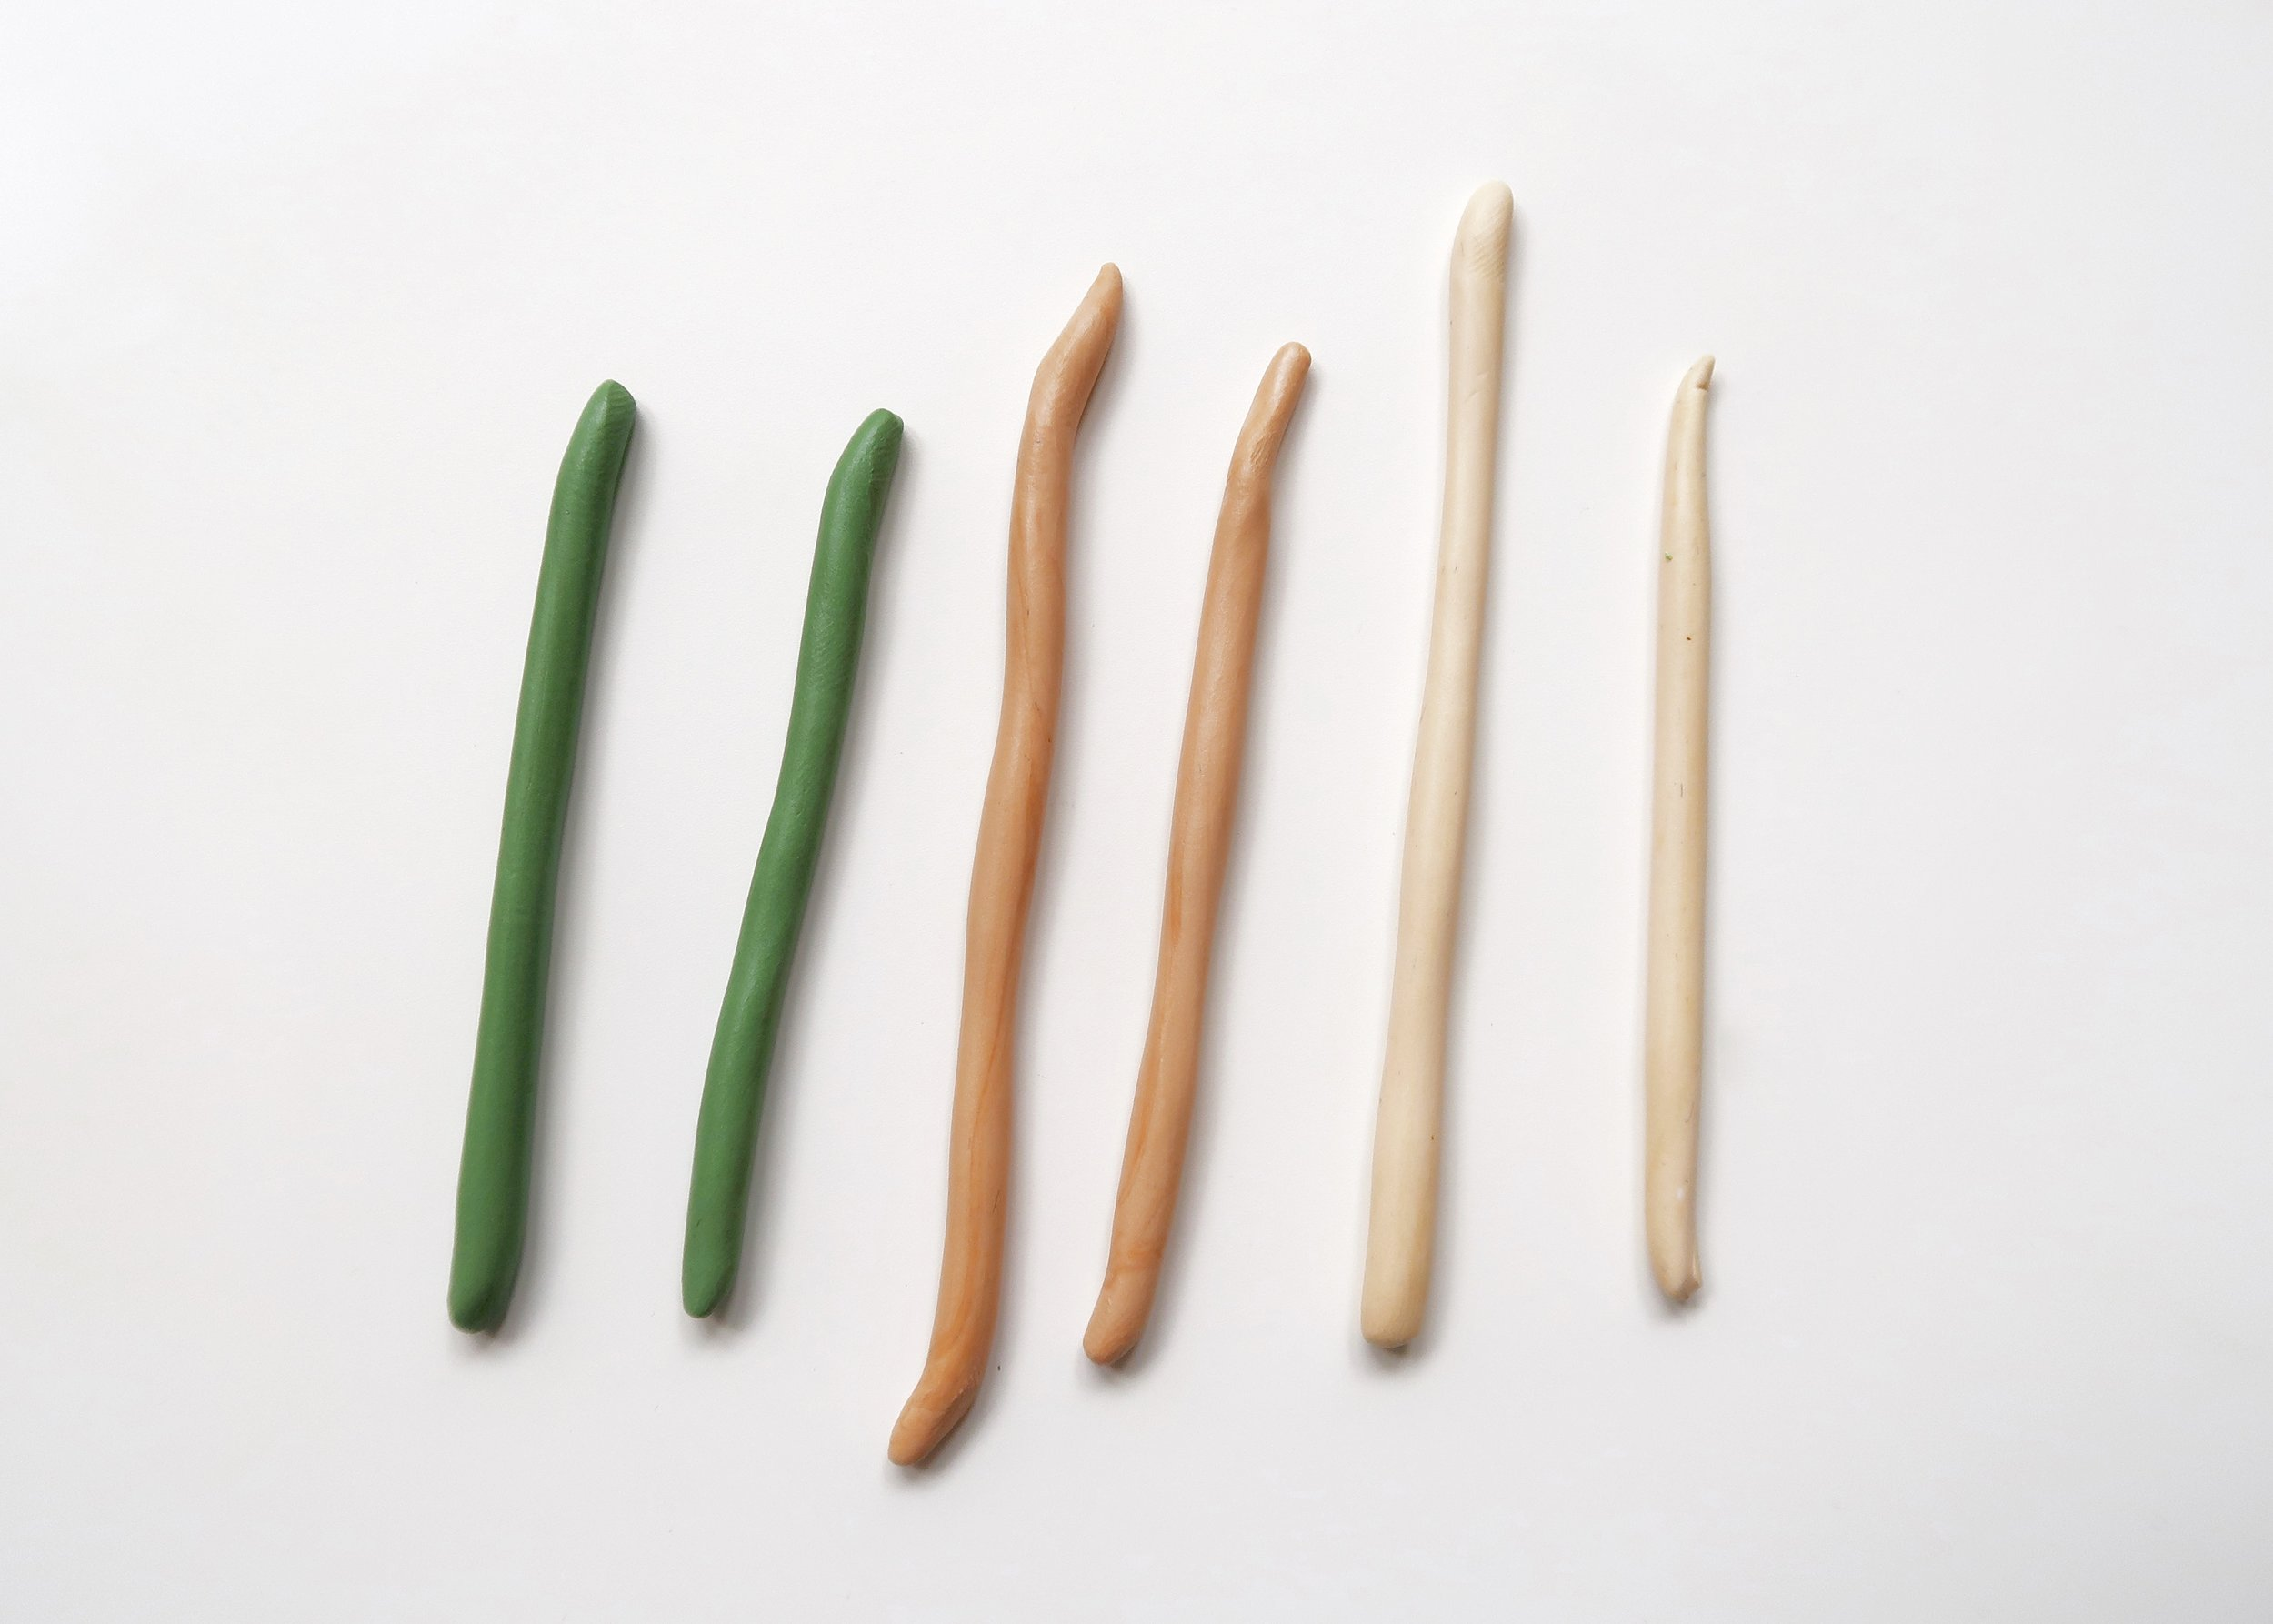 2. - Once you're happy with the colour of each of the clay balls, cut them in half. Using your hands and a non-sticky work surface, roll each ball into tubes of approximately the same diameter. Don't worry about the length of the tubes, the most important thing is that they are roughly the same width.